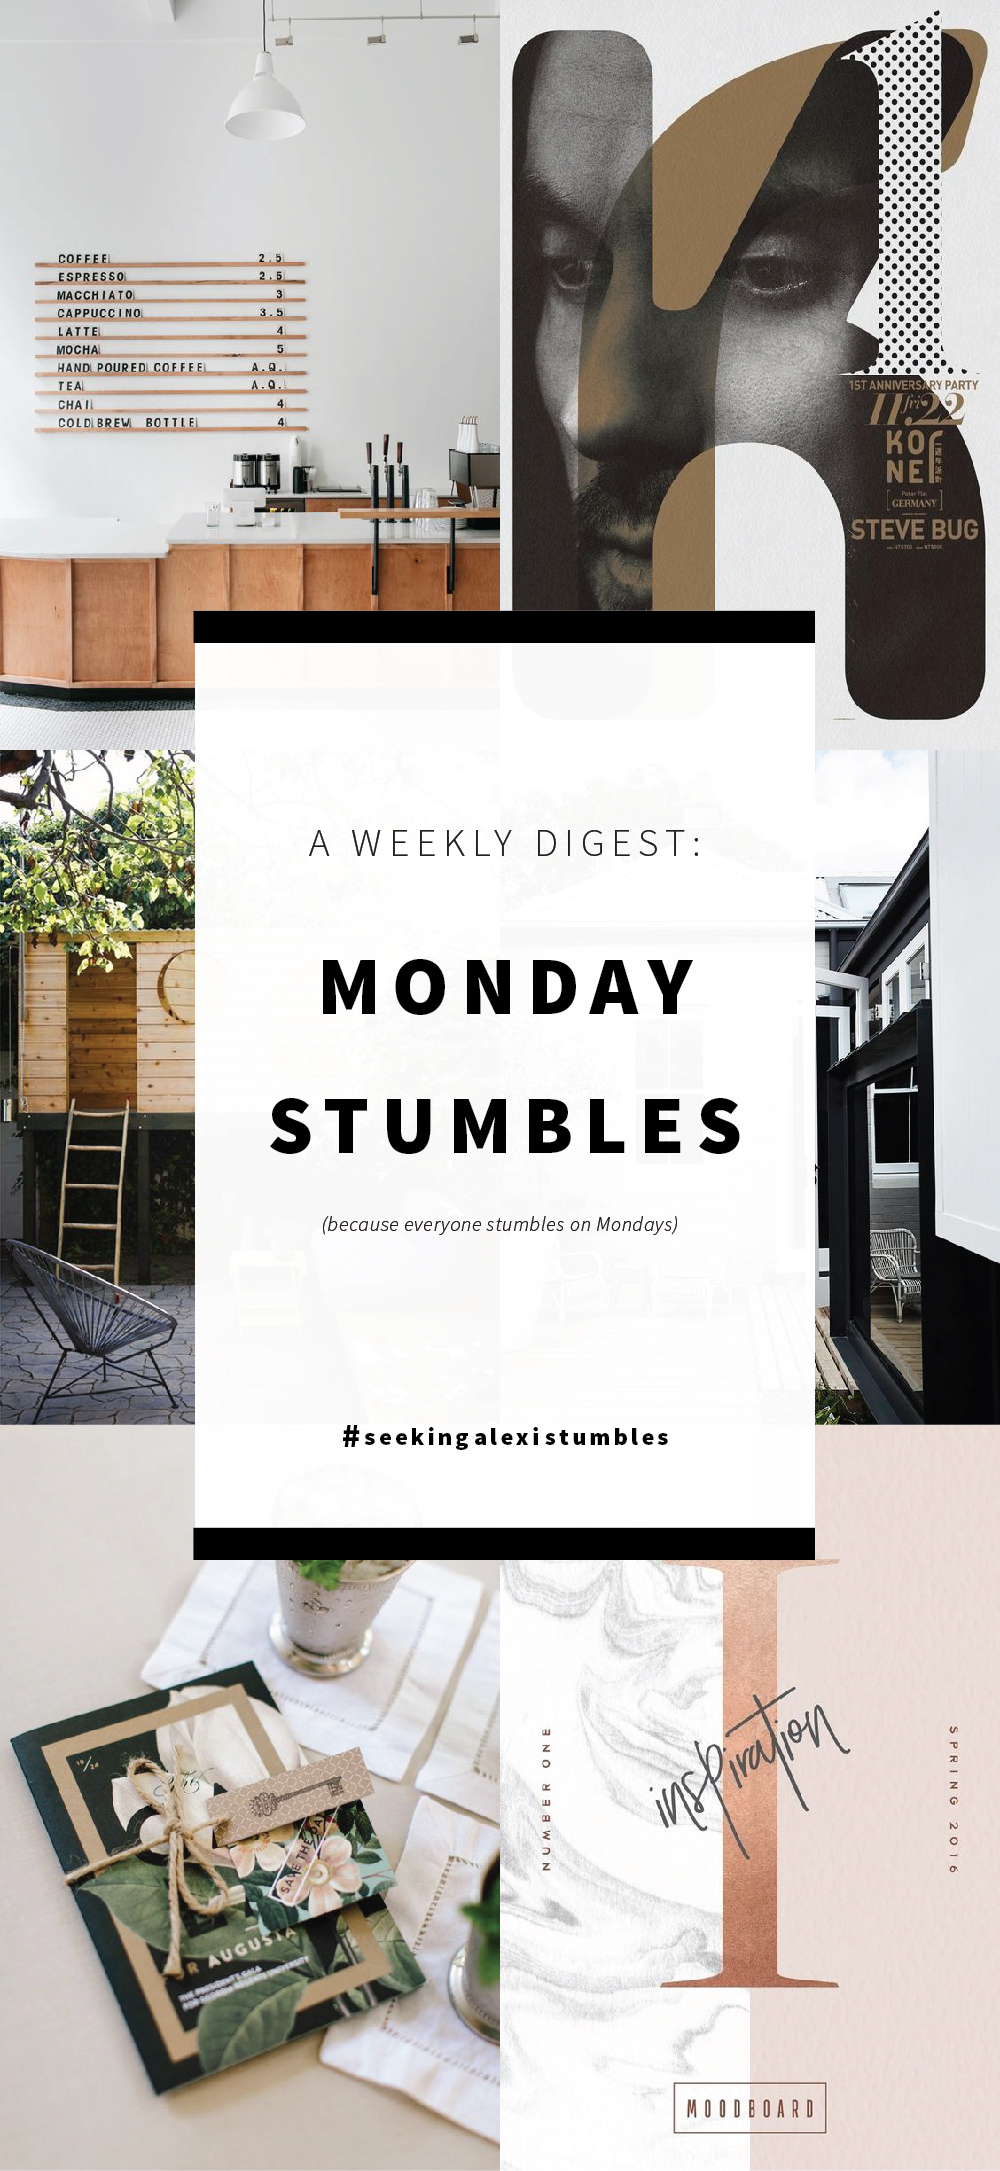 monday stumbles found images from pinterest